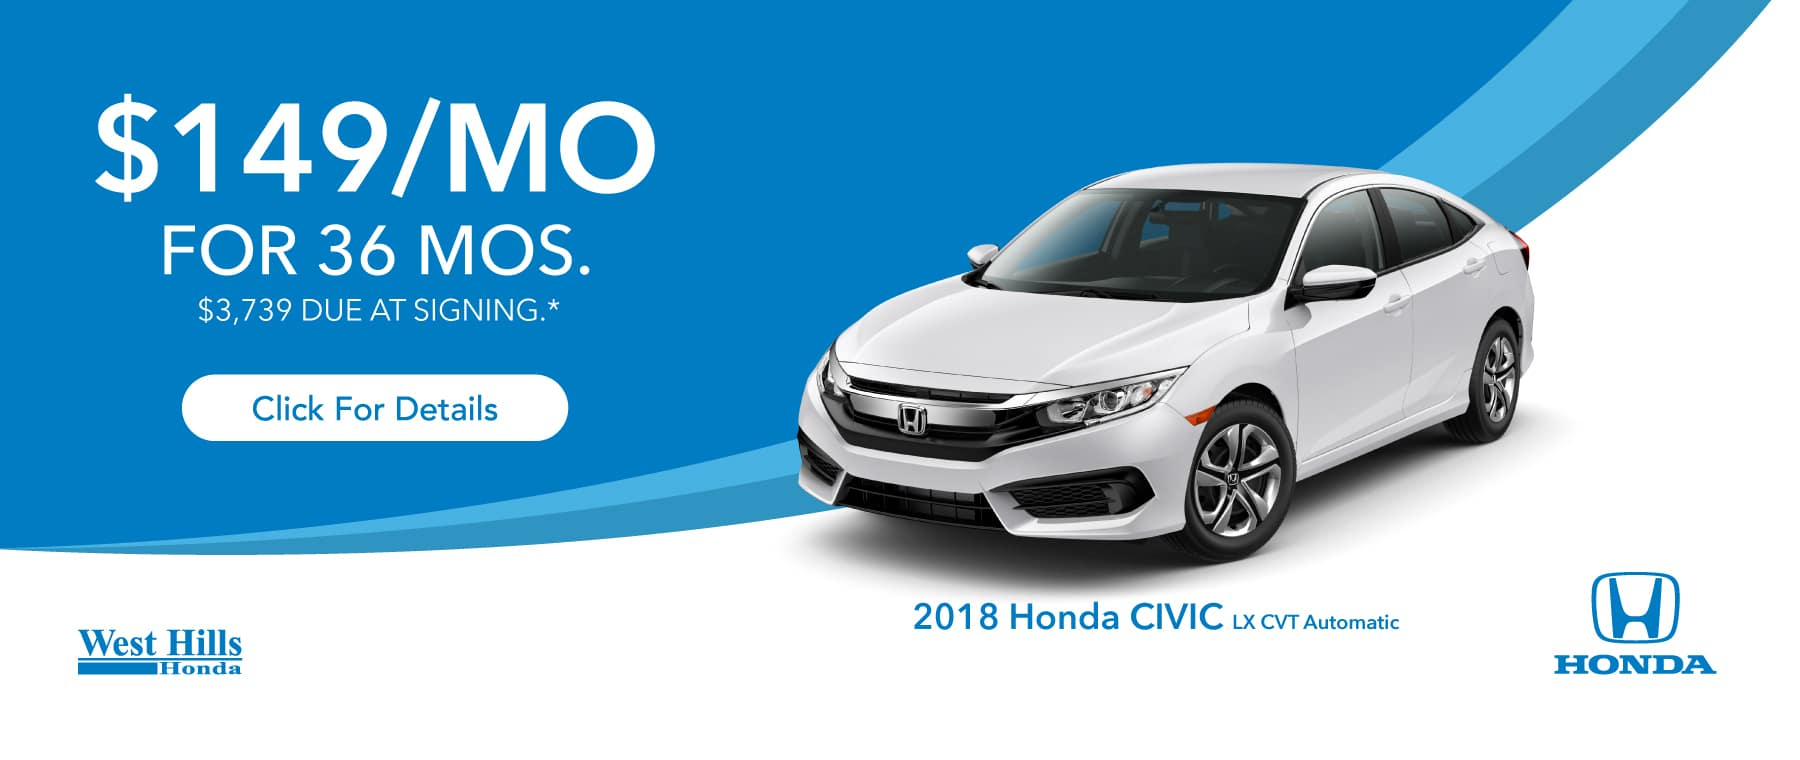 2018 Honda Civic LX CVT Automatic (Featured Vehicle)  $149/mo. for 36 mos. $3,739 due at signing*    *$149 per mo. for 36 months. Lease with $3,739 due at signing; includes a $595 acquisition fee on 2018 Honda Civic LX CVT Automatic. Valid on VIN: 2HGFC2F51JH597657. MSRP is $20,635. No Security deposit required. Subject to credit approval. 36 monthly payments required. Not all lessees will qualify for lowest payment through participating lender. Residency restrictions apply. Lessee responsible for maintenance, excessive wear/tear and mileage over 12,000 miles per year at $0.15/mile. Option to purchase at lease end. Excludes state and local taxes, tags, registration and title, insurance and dealer charges. A negotiable dealer documentary service fee of up to $150 may be added to the sale price or capitalized cost. Offer expires 1/31/2019.